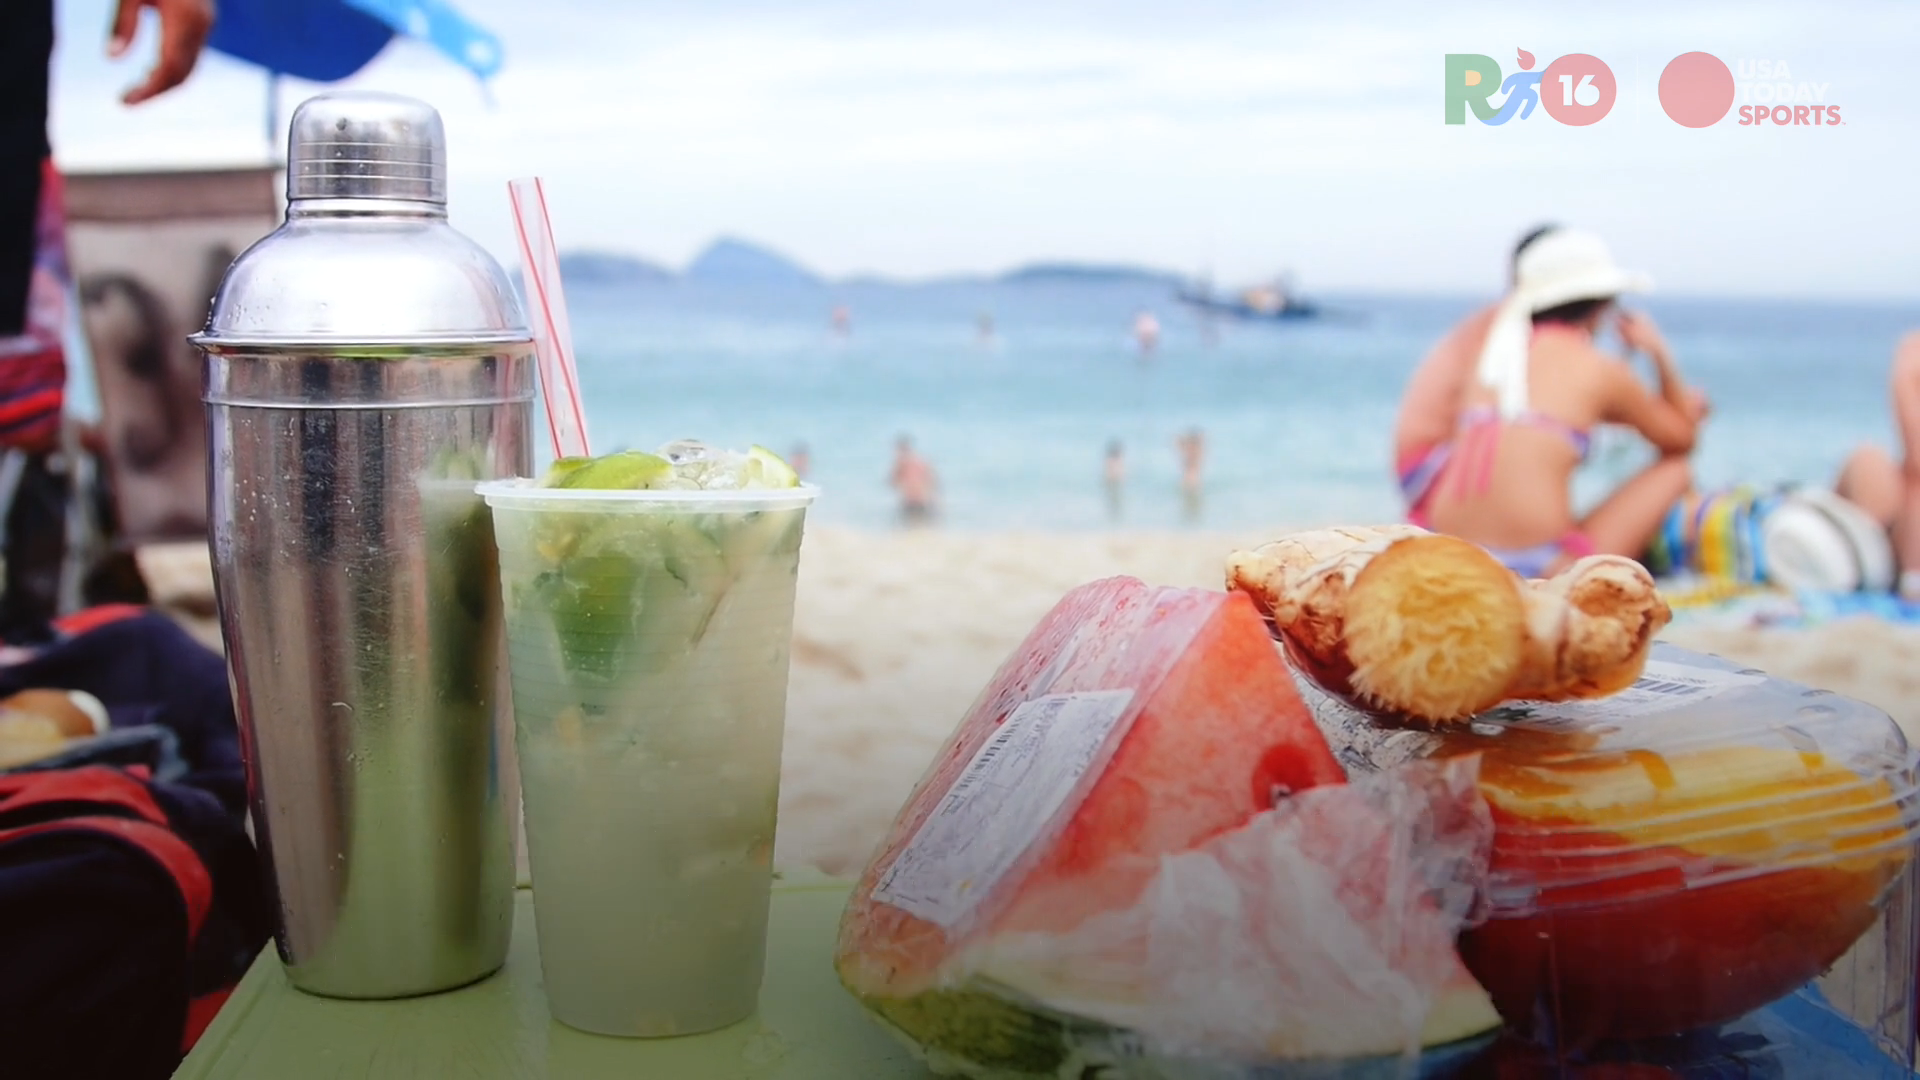 Rio Daily: Beach food